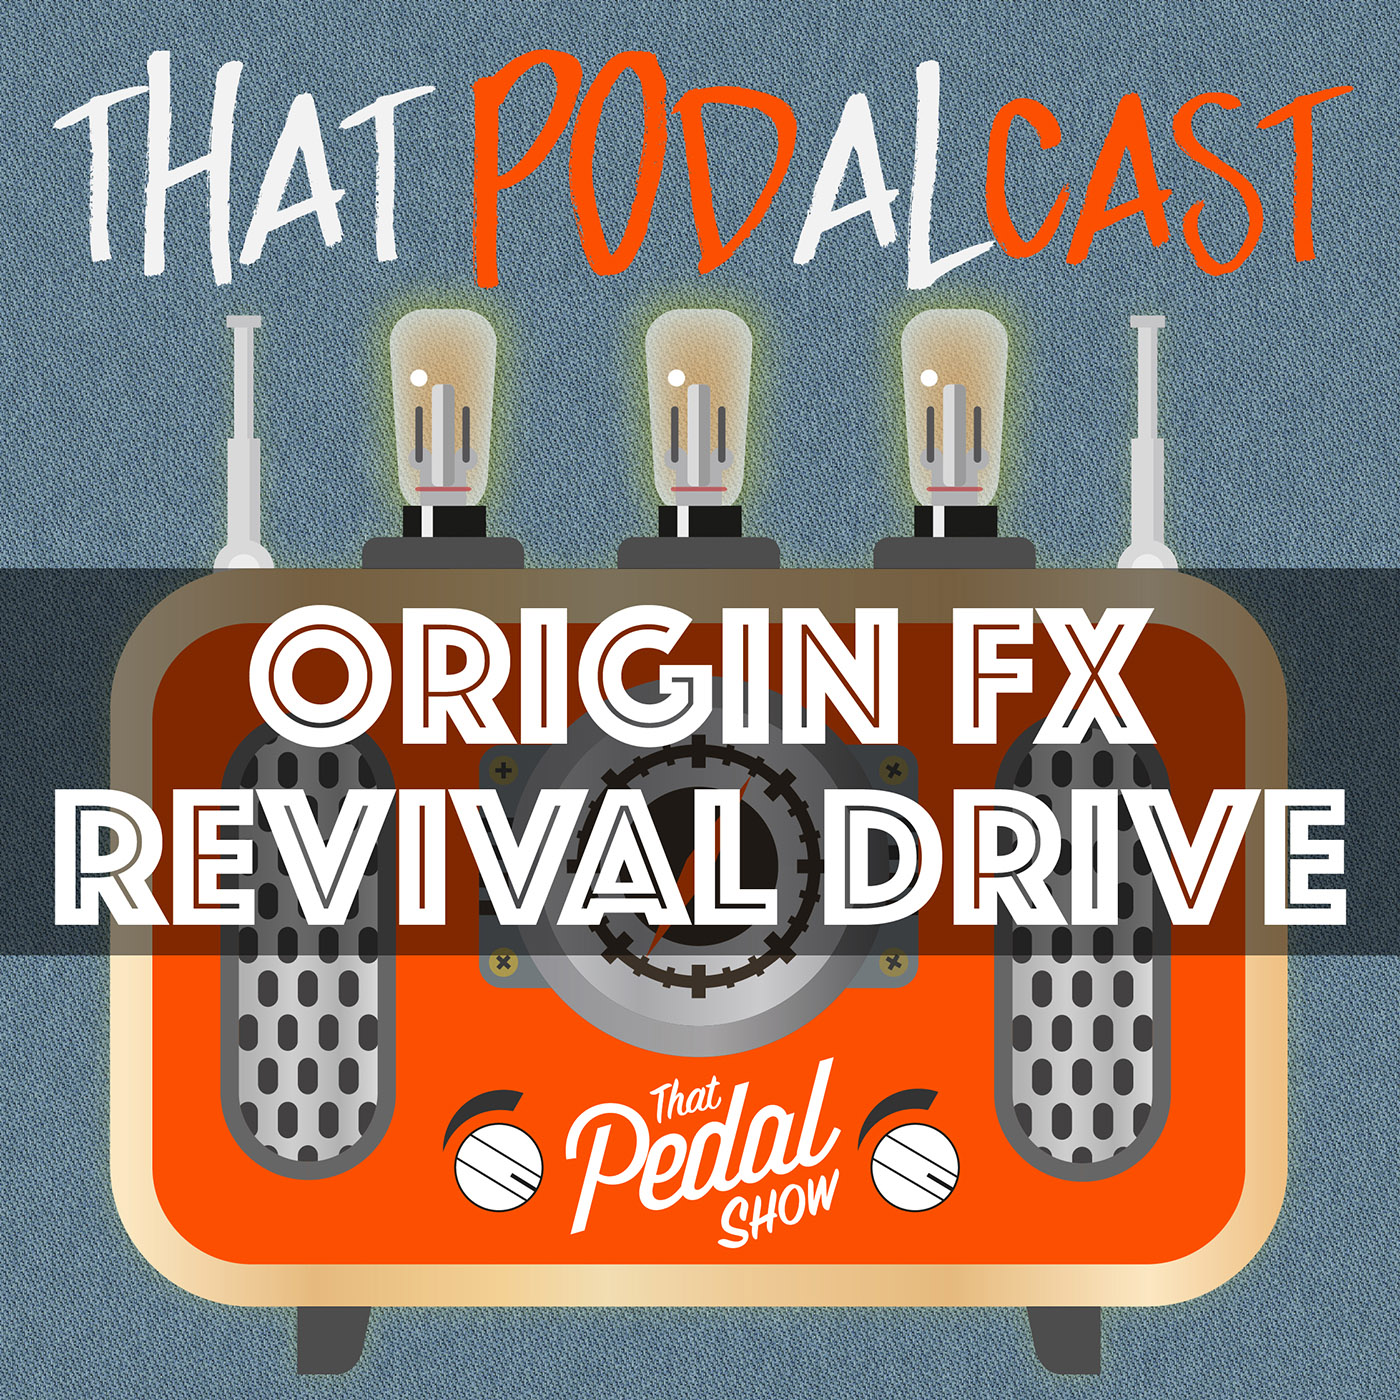 Origin Effects Revival Drive – What Do We Think?